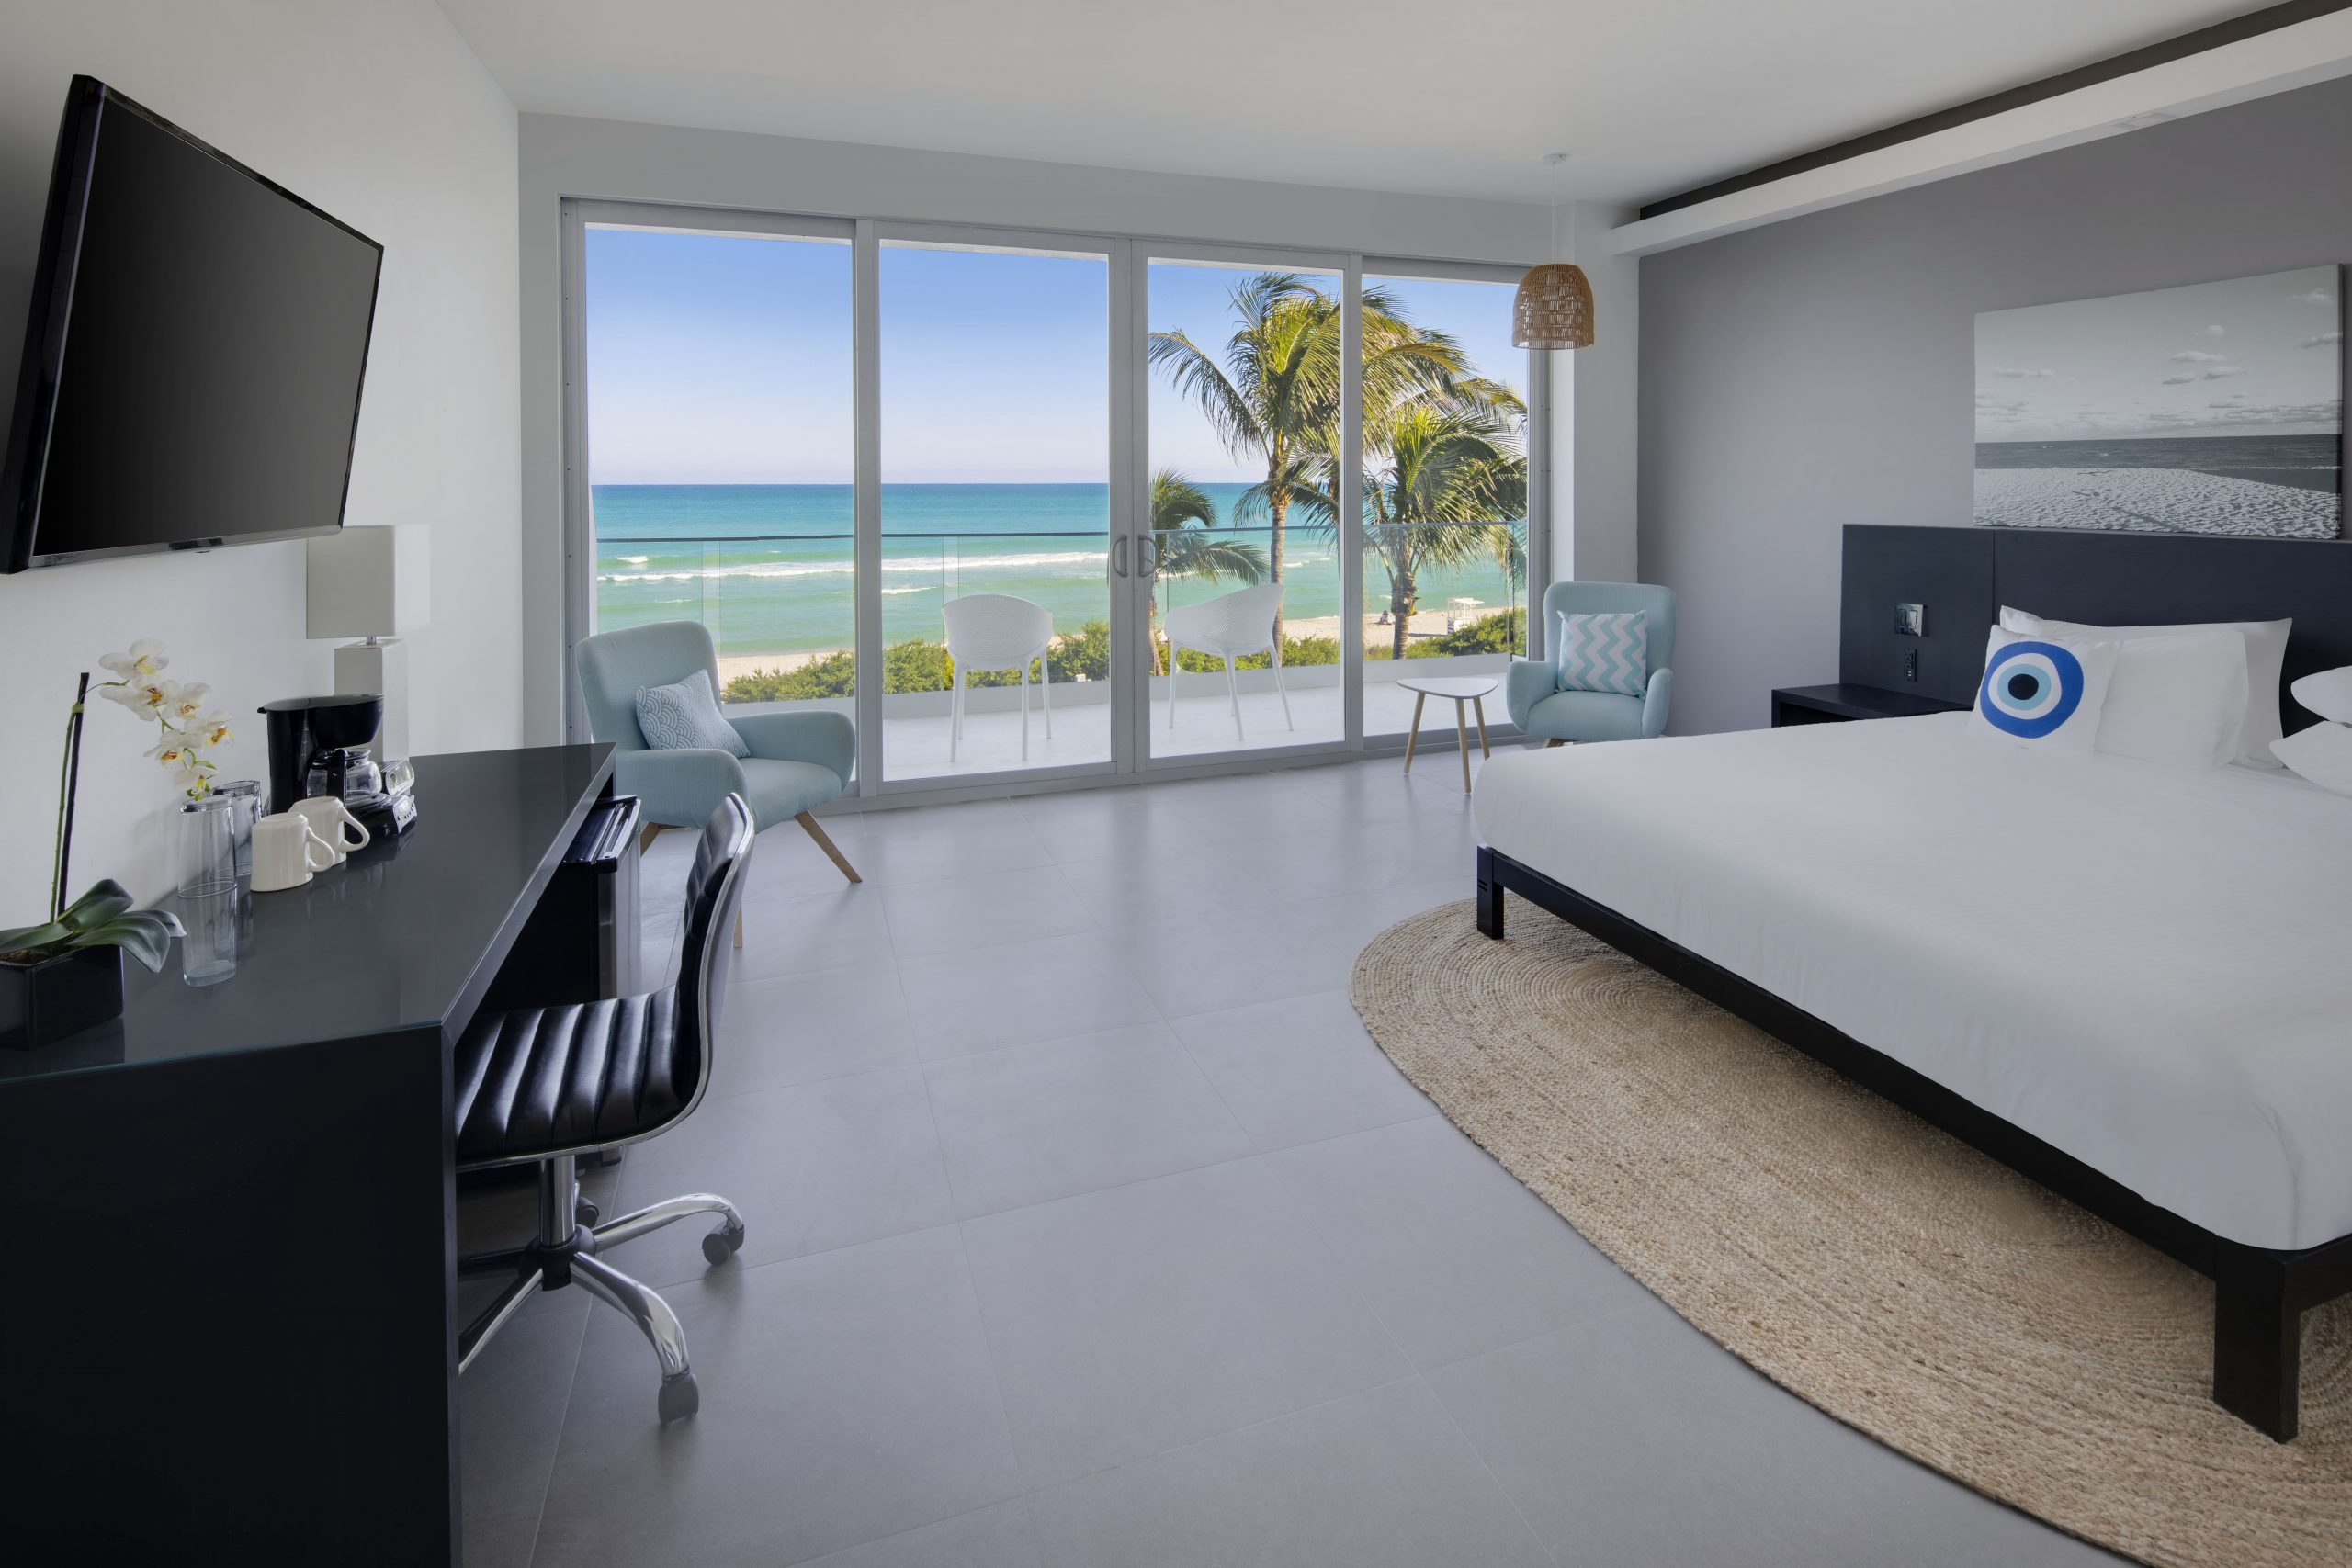 Oceanfront-King-bed-balcony-scaled